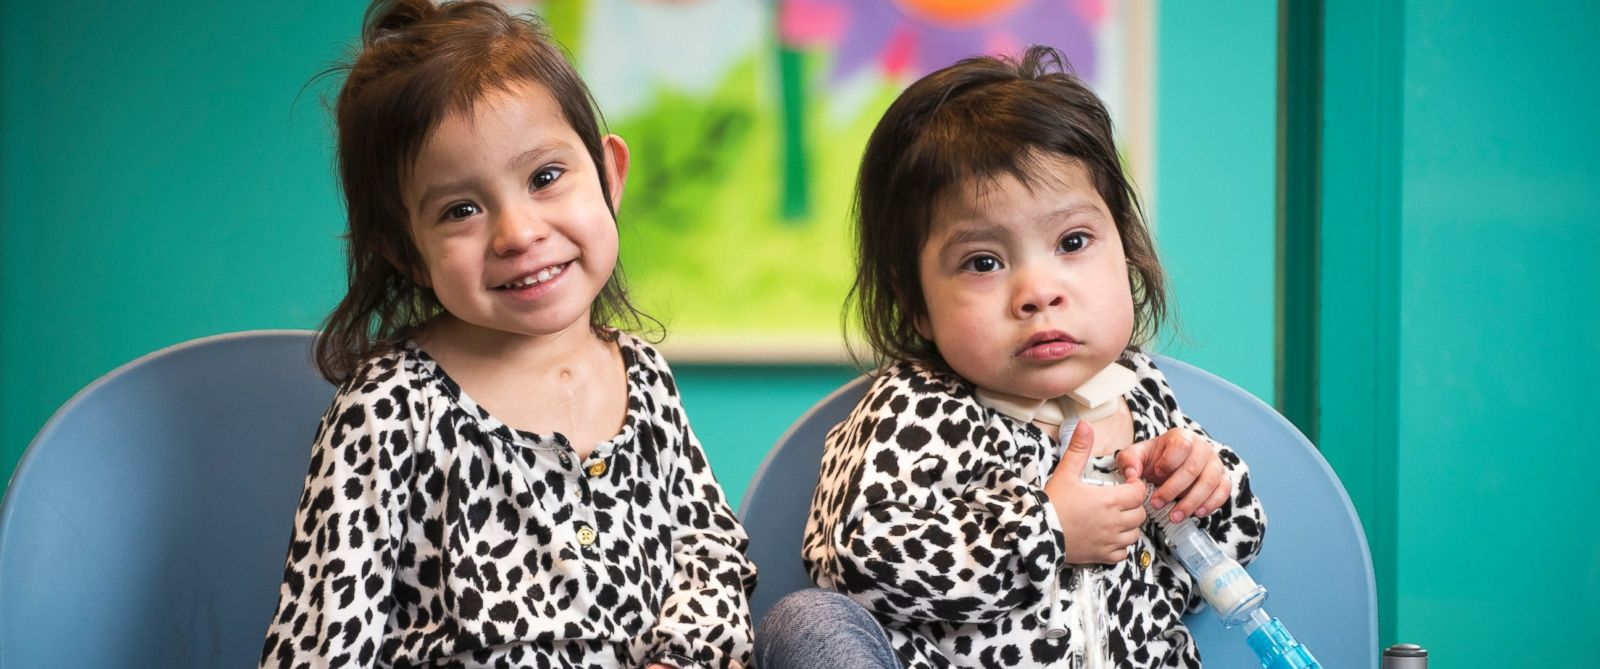 Knatalye Hope and Adeline Faith visiting Texas Childrens a few weeks before the one year anniversary of their historic separation surgery.